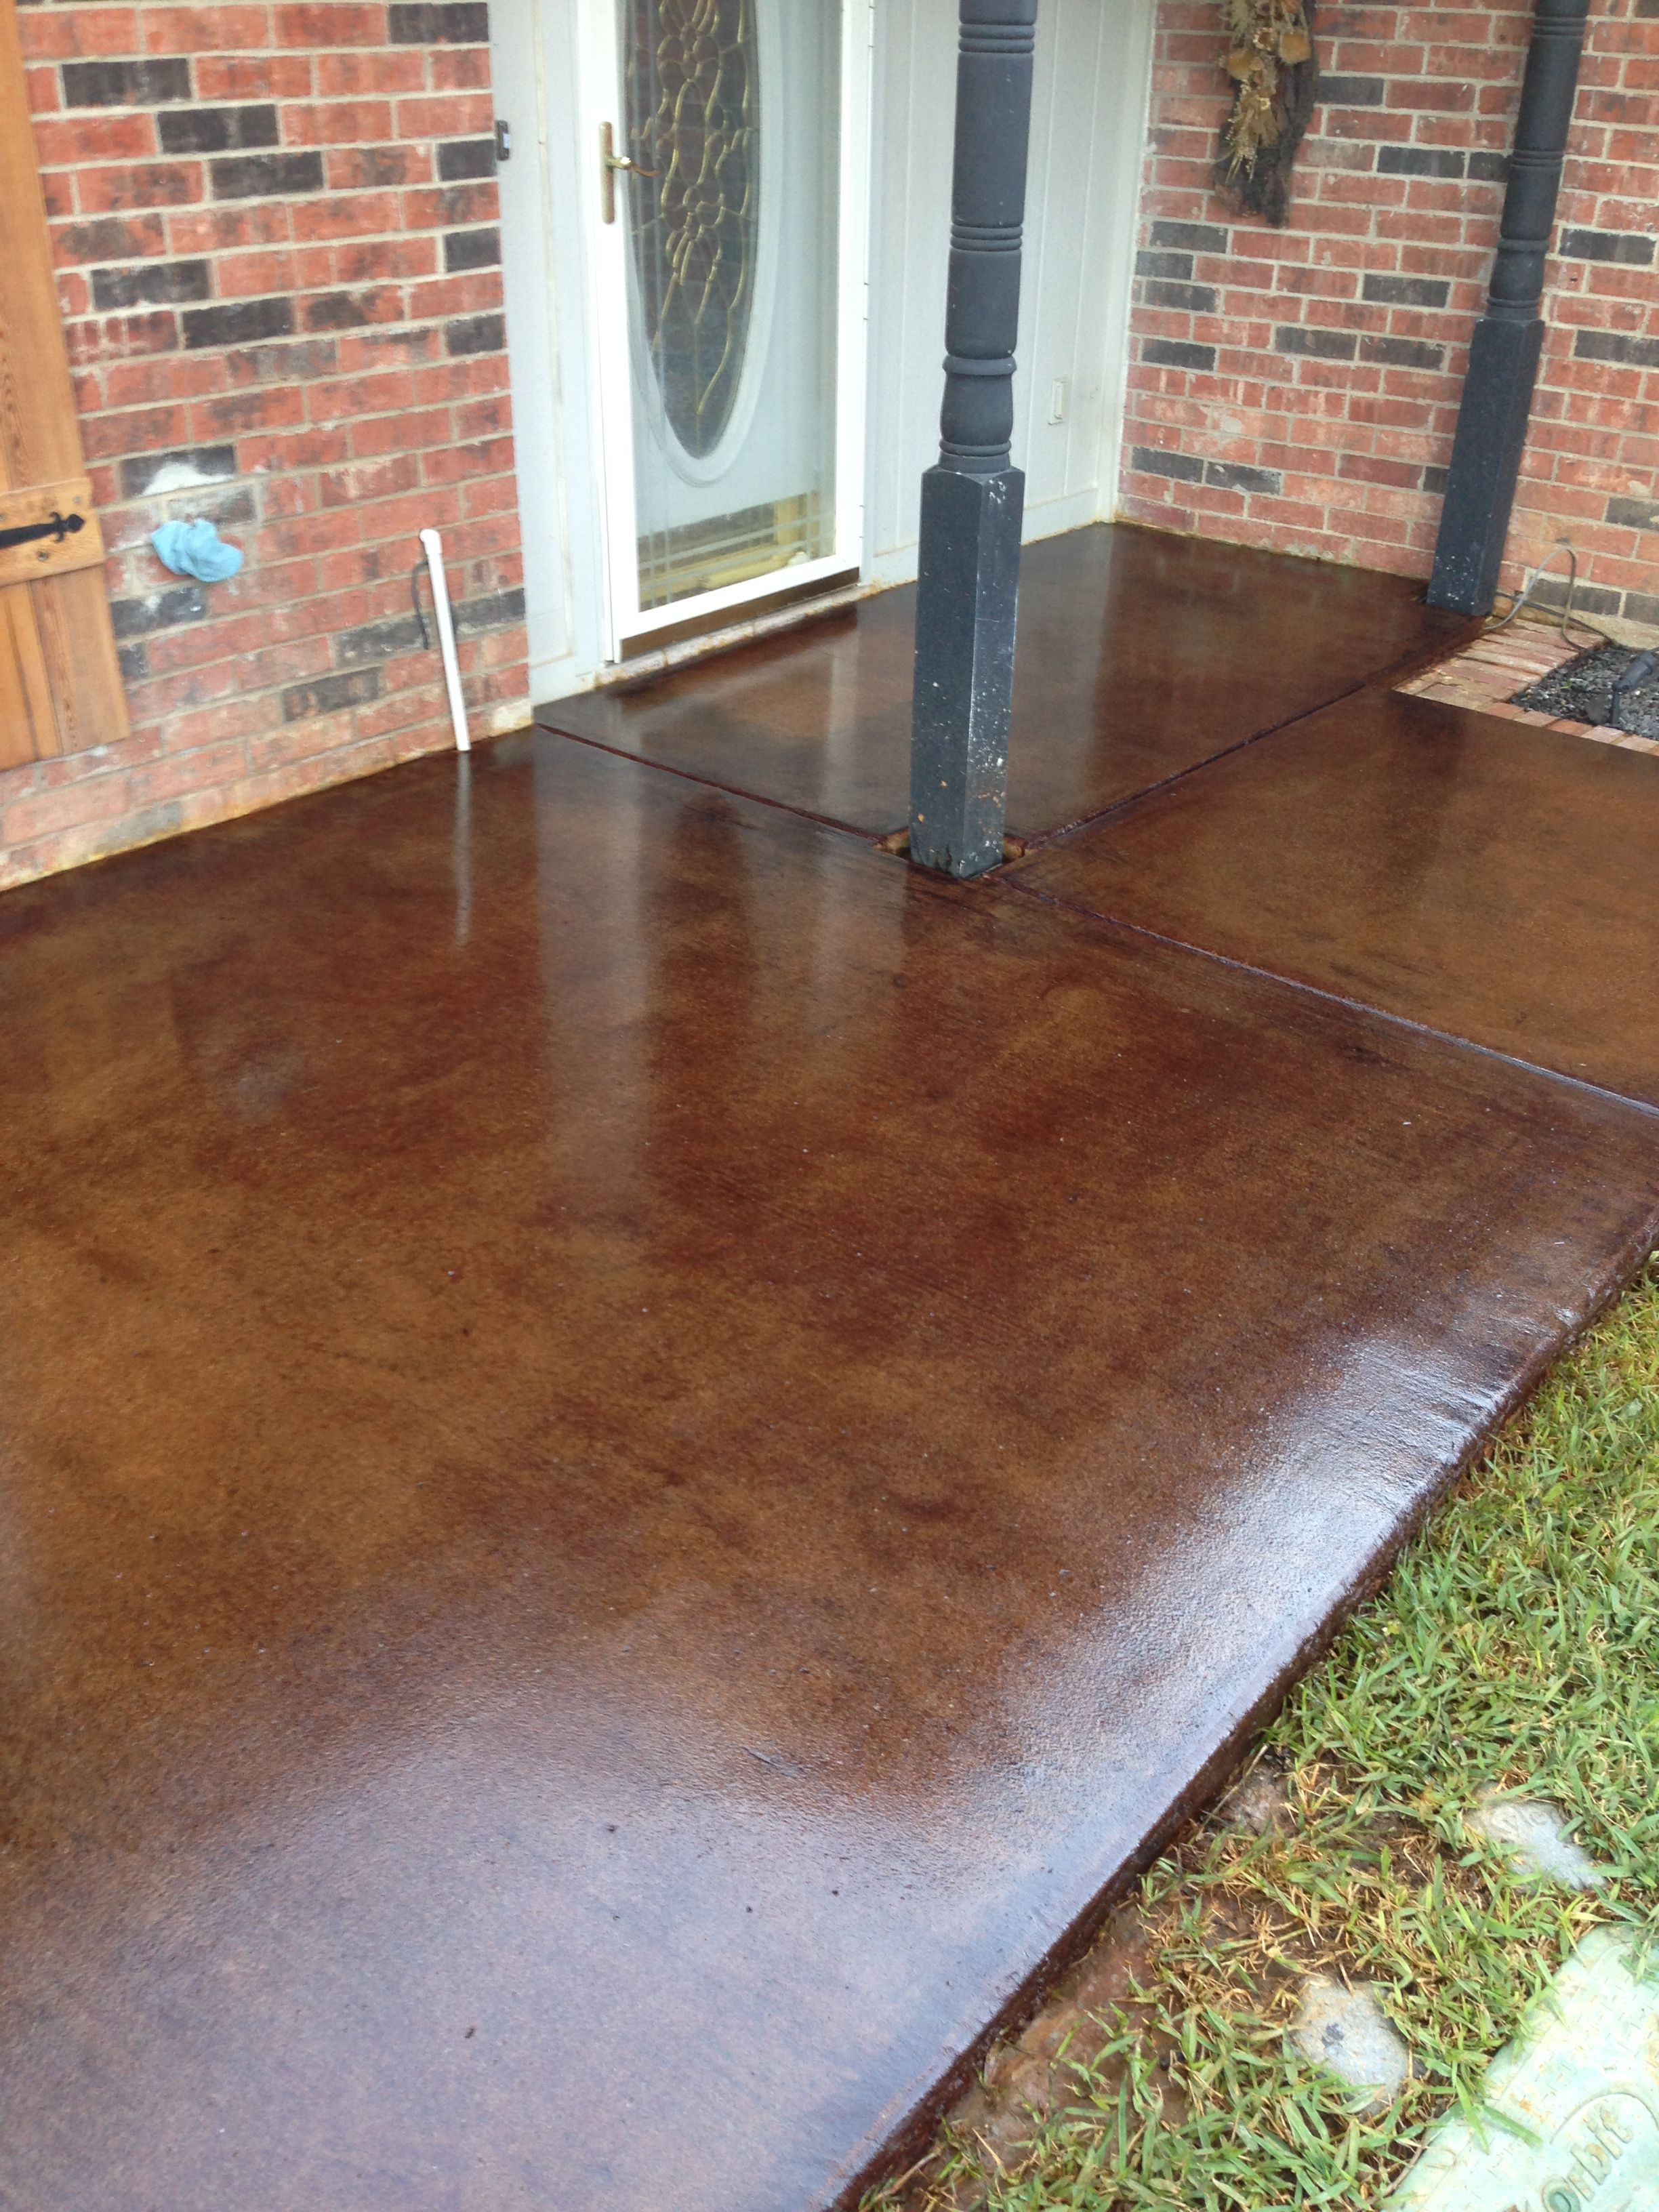 Brickform Mission Brown Acid Stained Patio Concrete Was Ground With A Diamond Grinder To Clean And Remove Stains